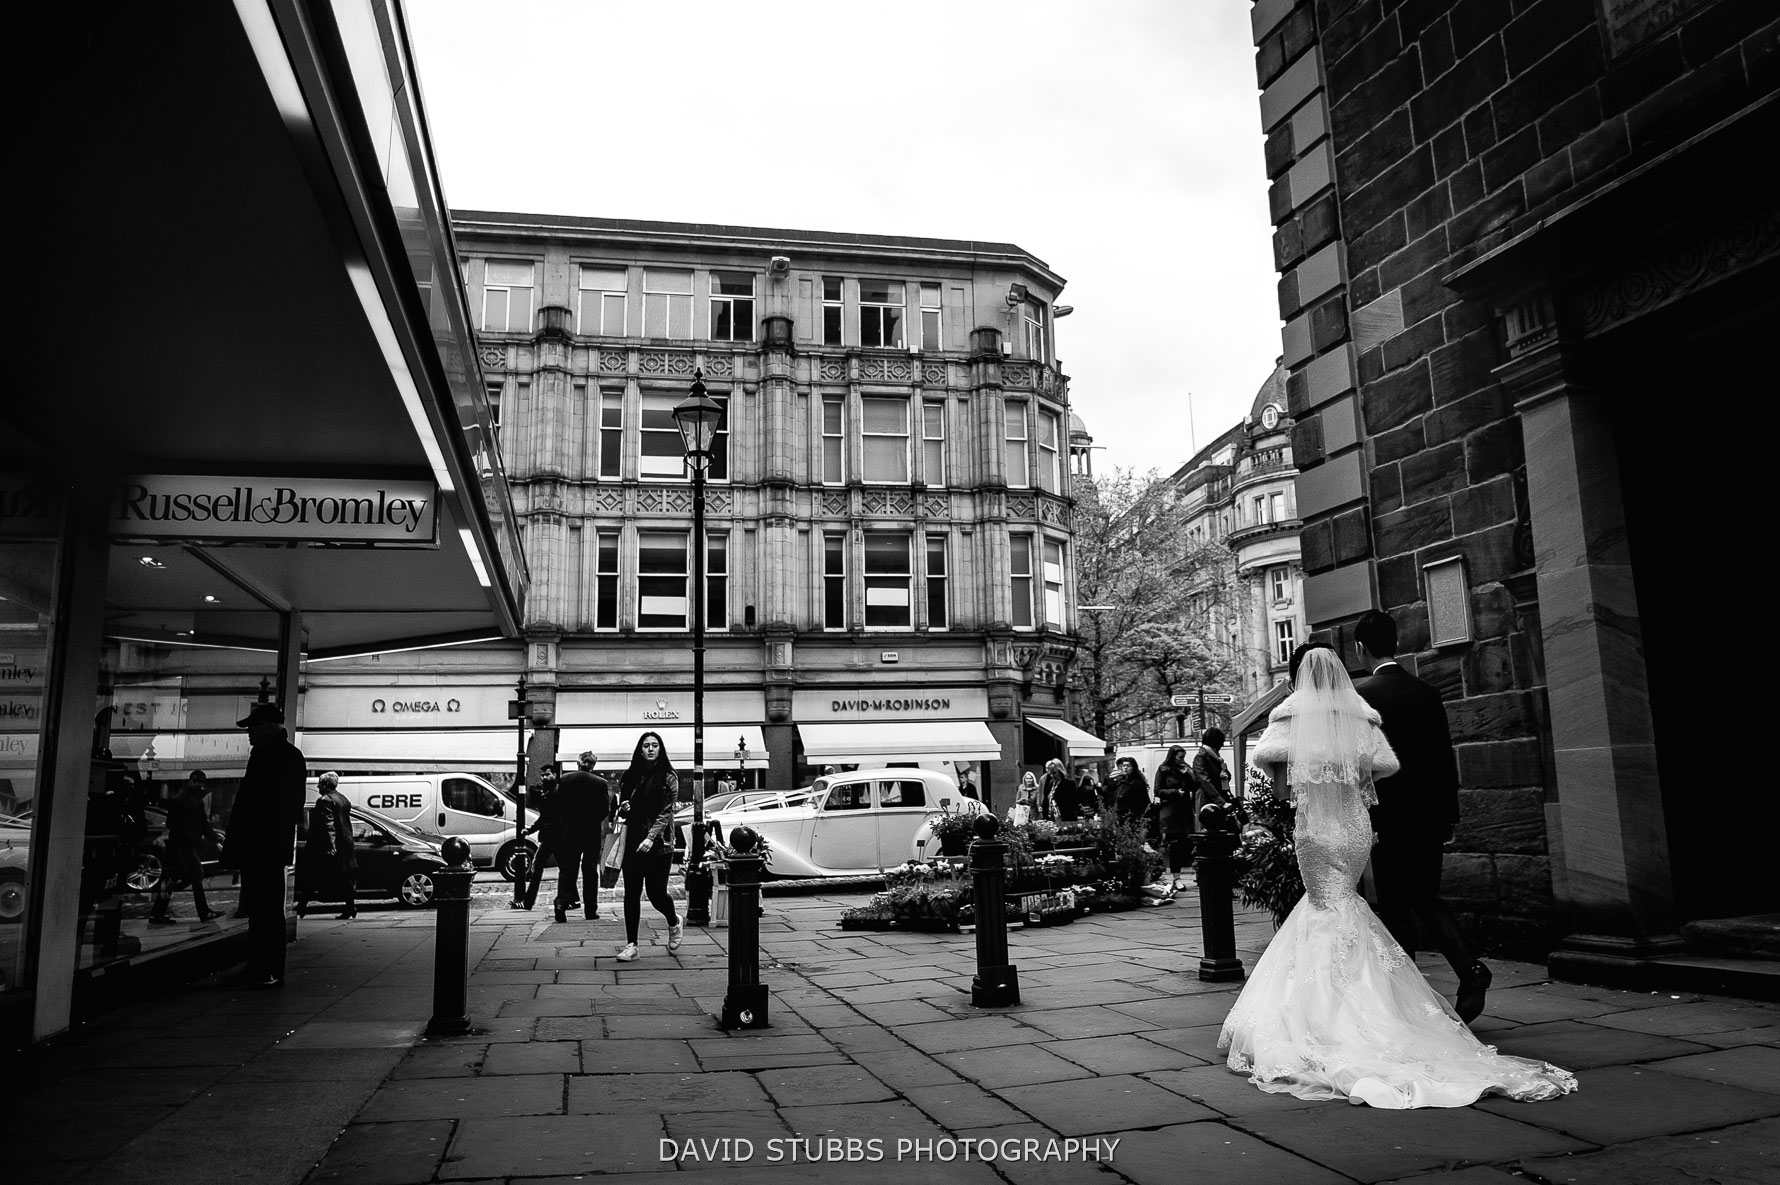 walking through the city centre after the wedding